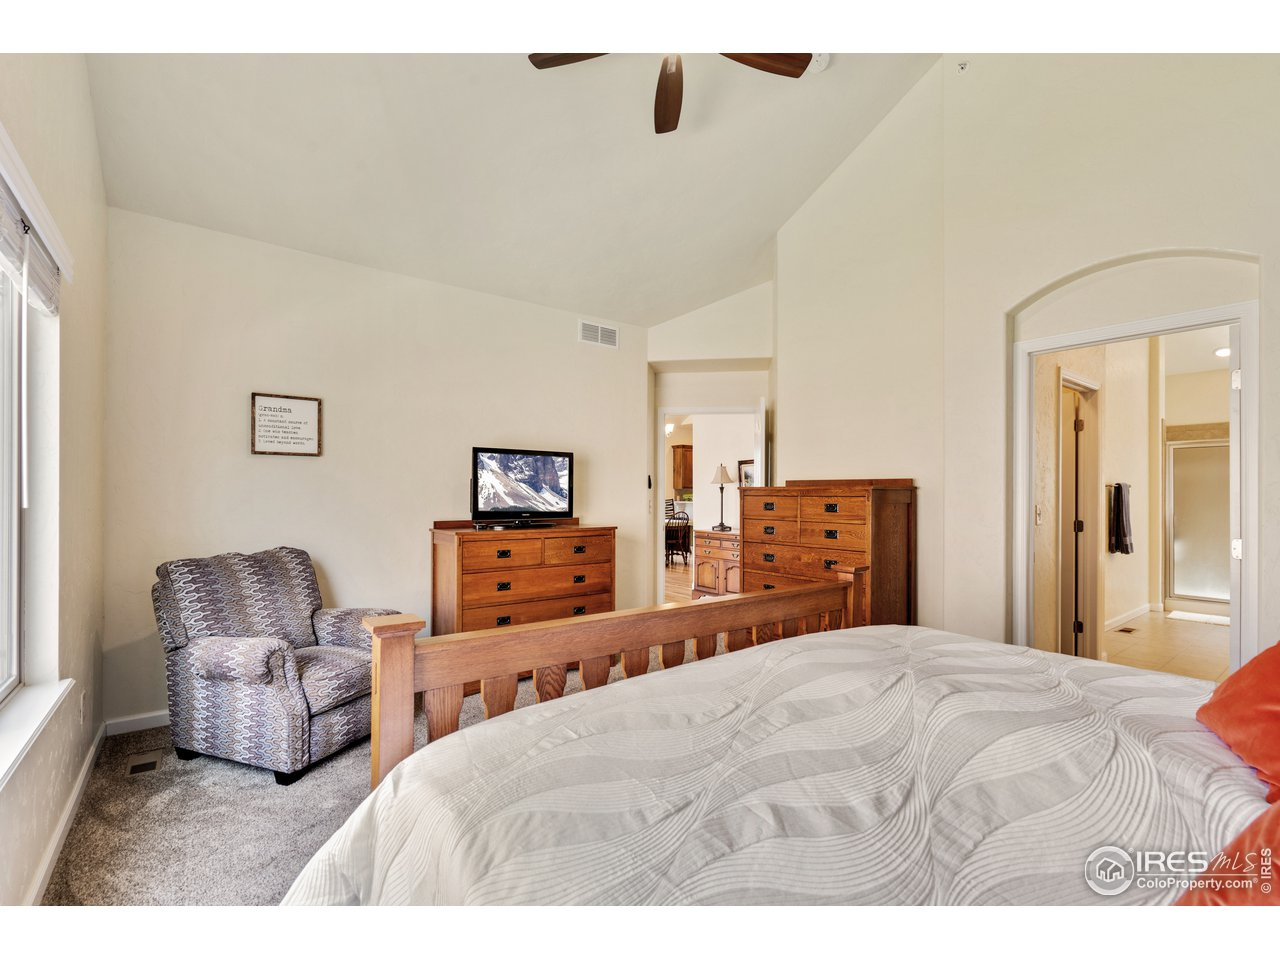 vaulted ceilings create a beautiful space